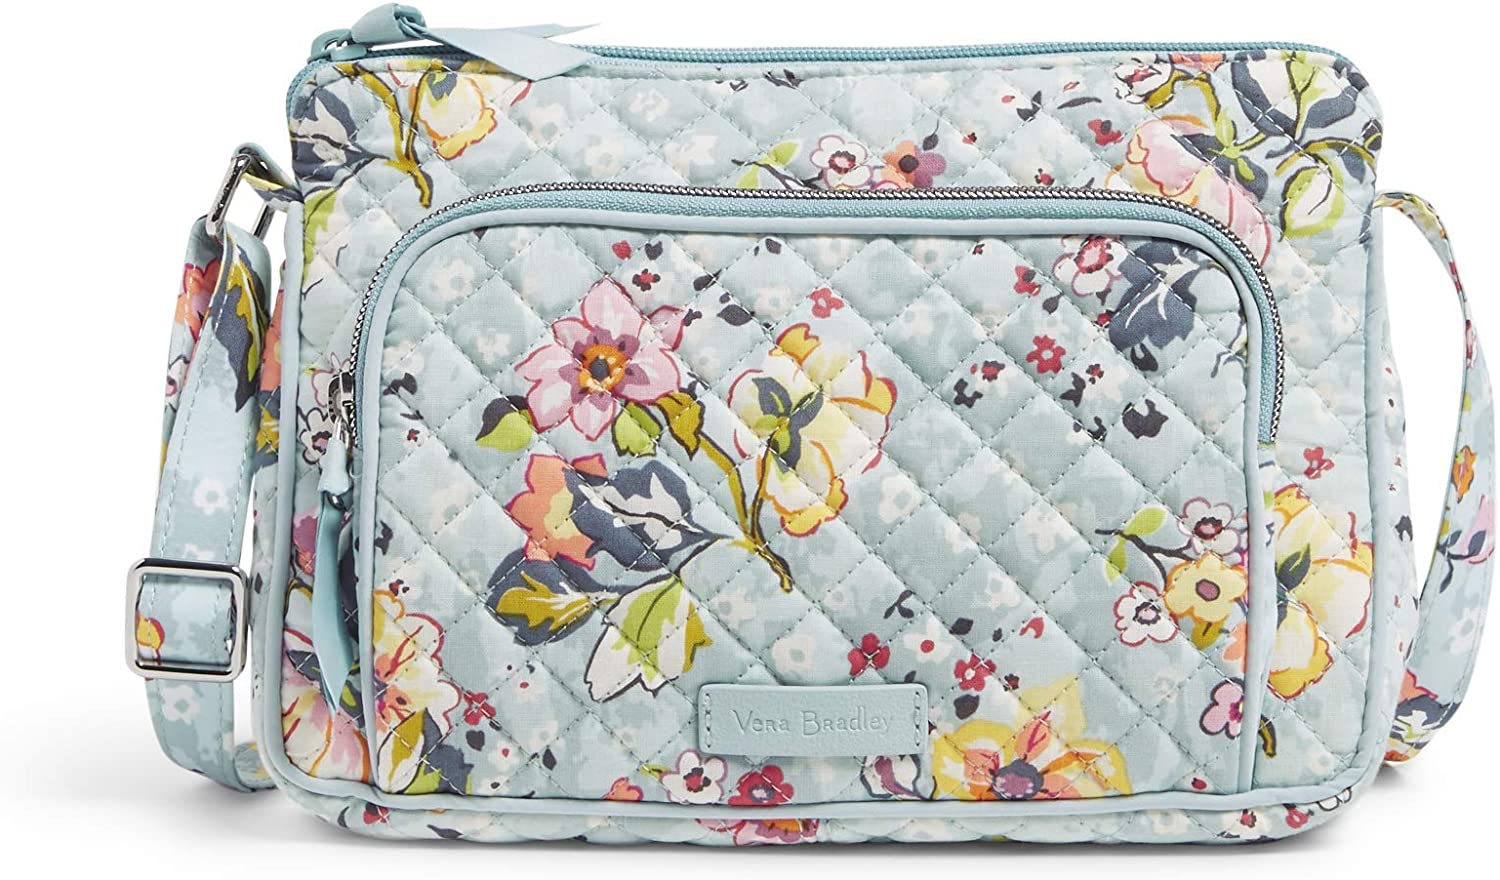 Vera Bradley Women's Signature Cotton Little Hipster Crossbody Purse with RFID Protection